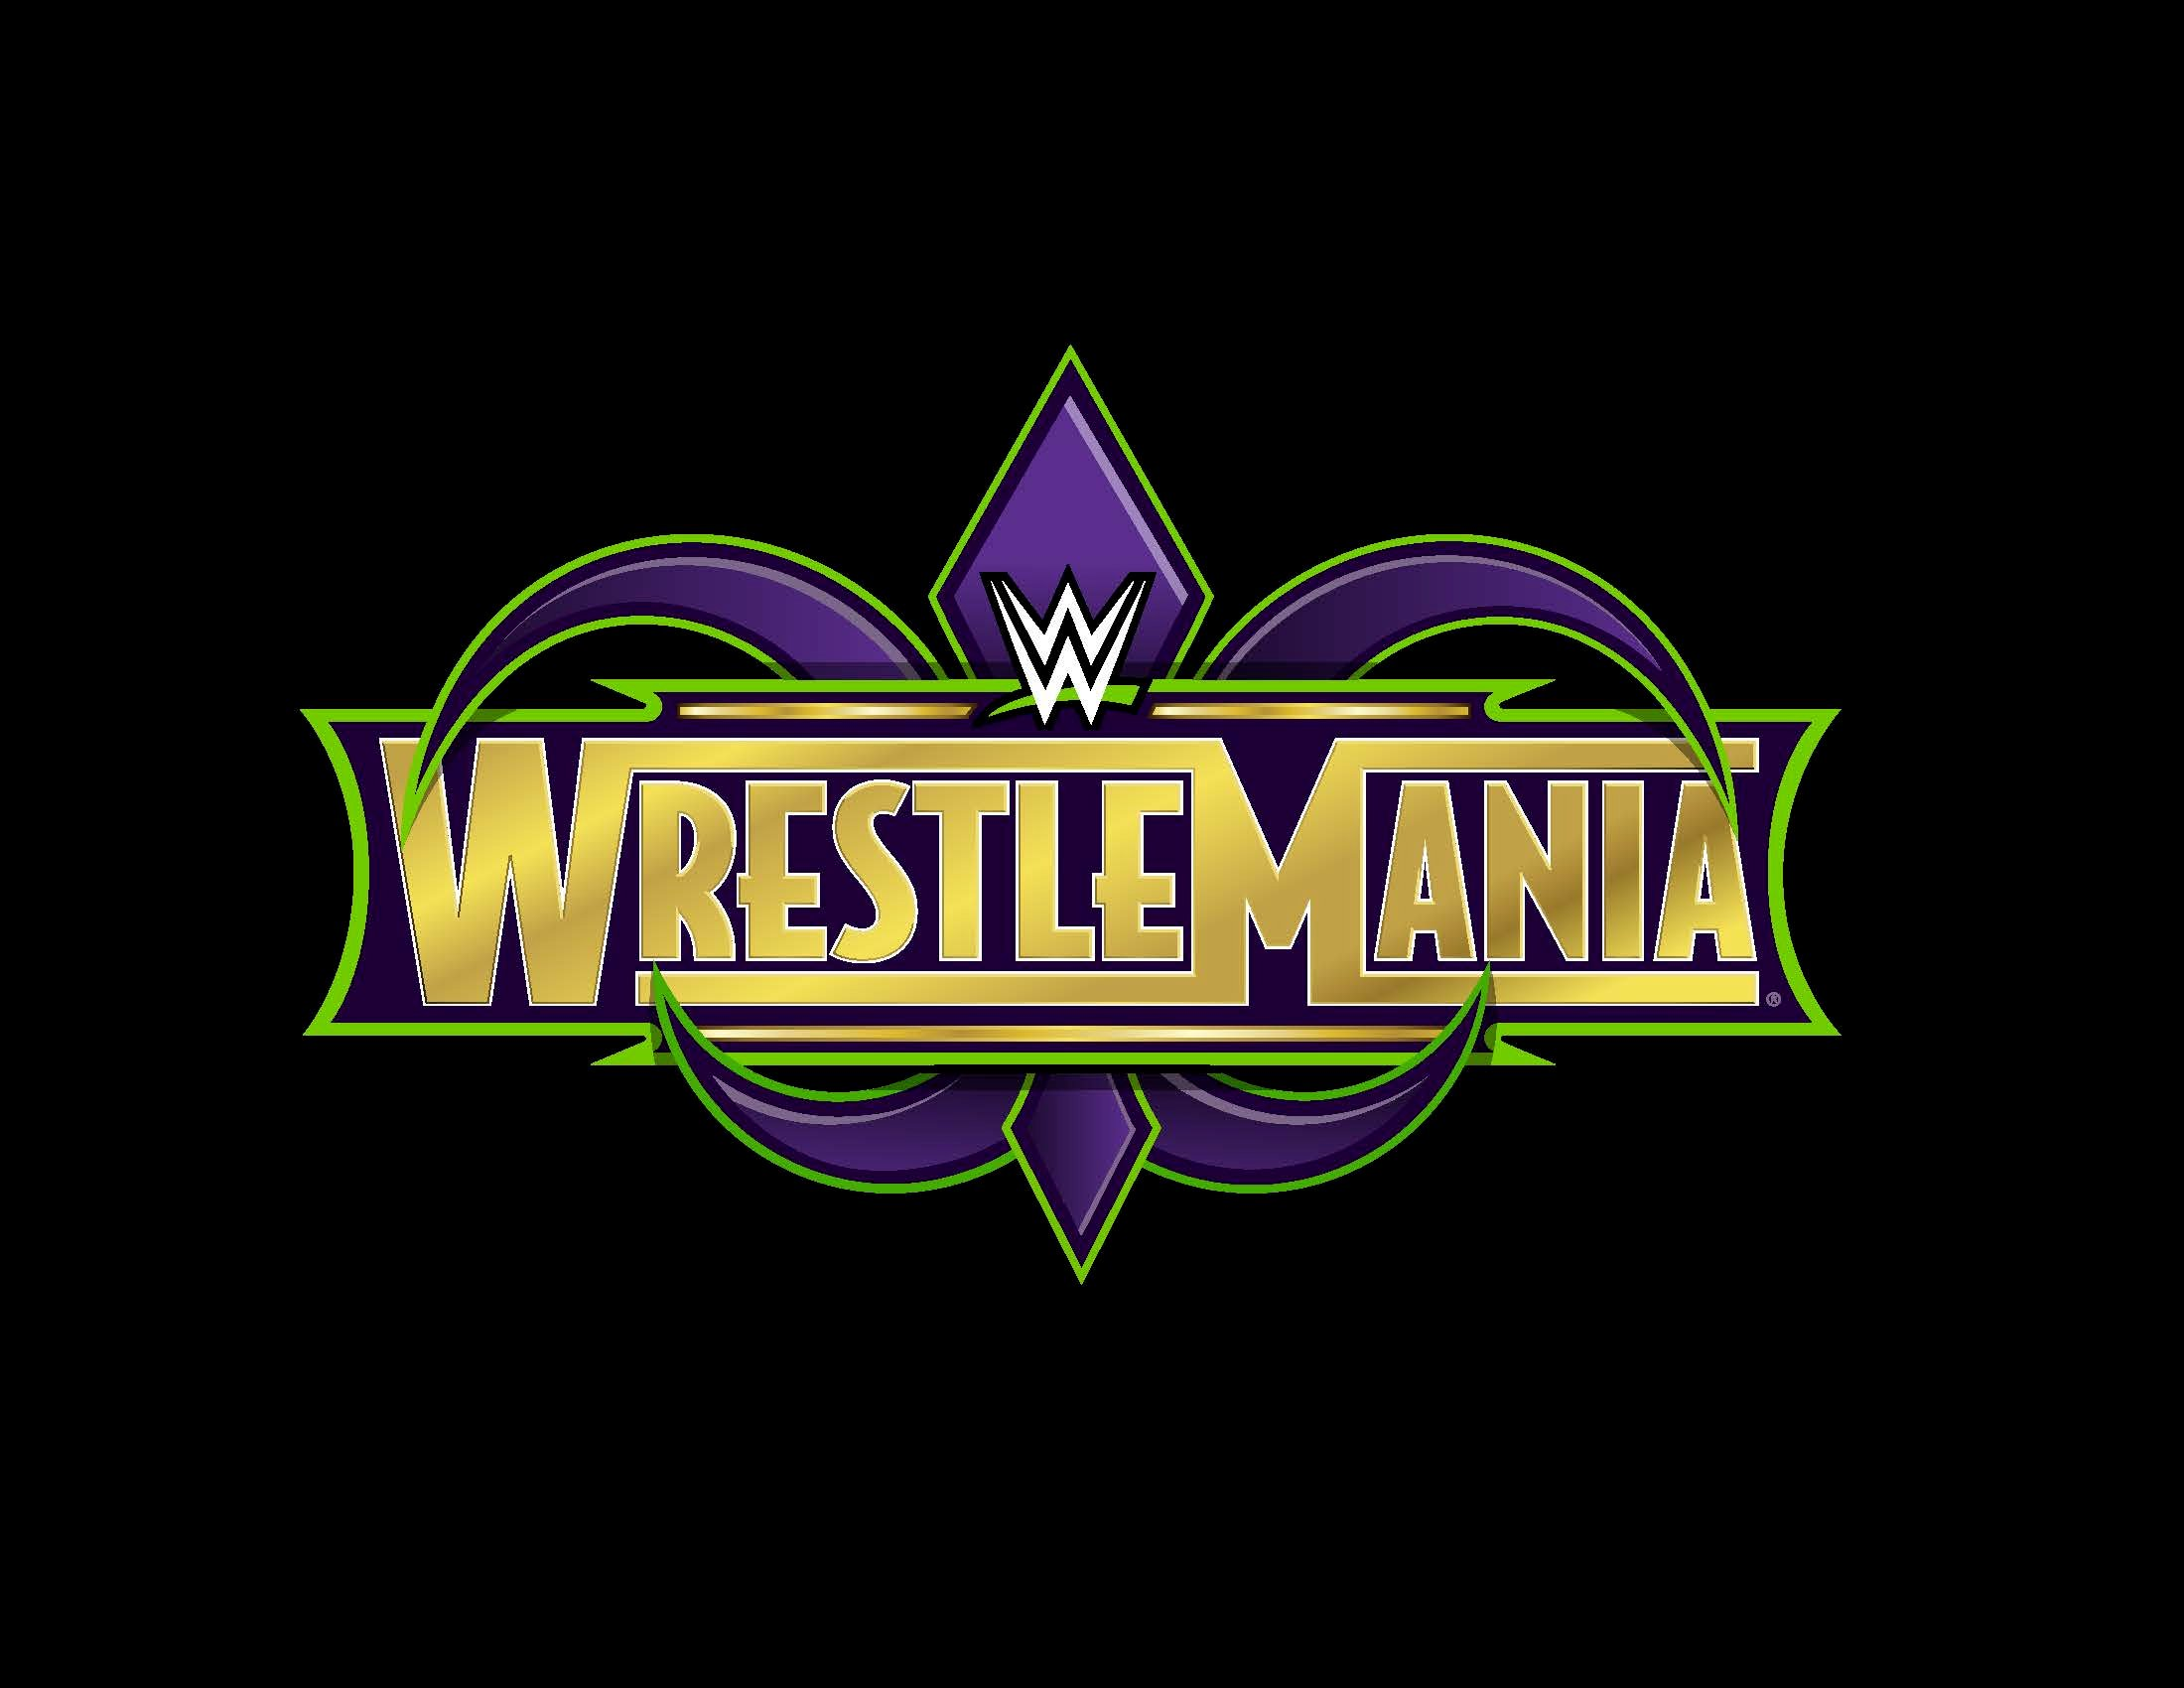 WrestleMania XXXIV Logo (Courtesy: WWE)